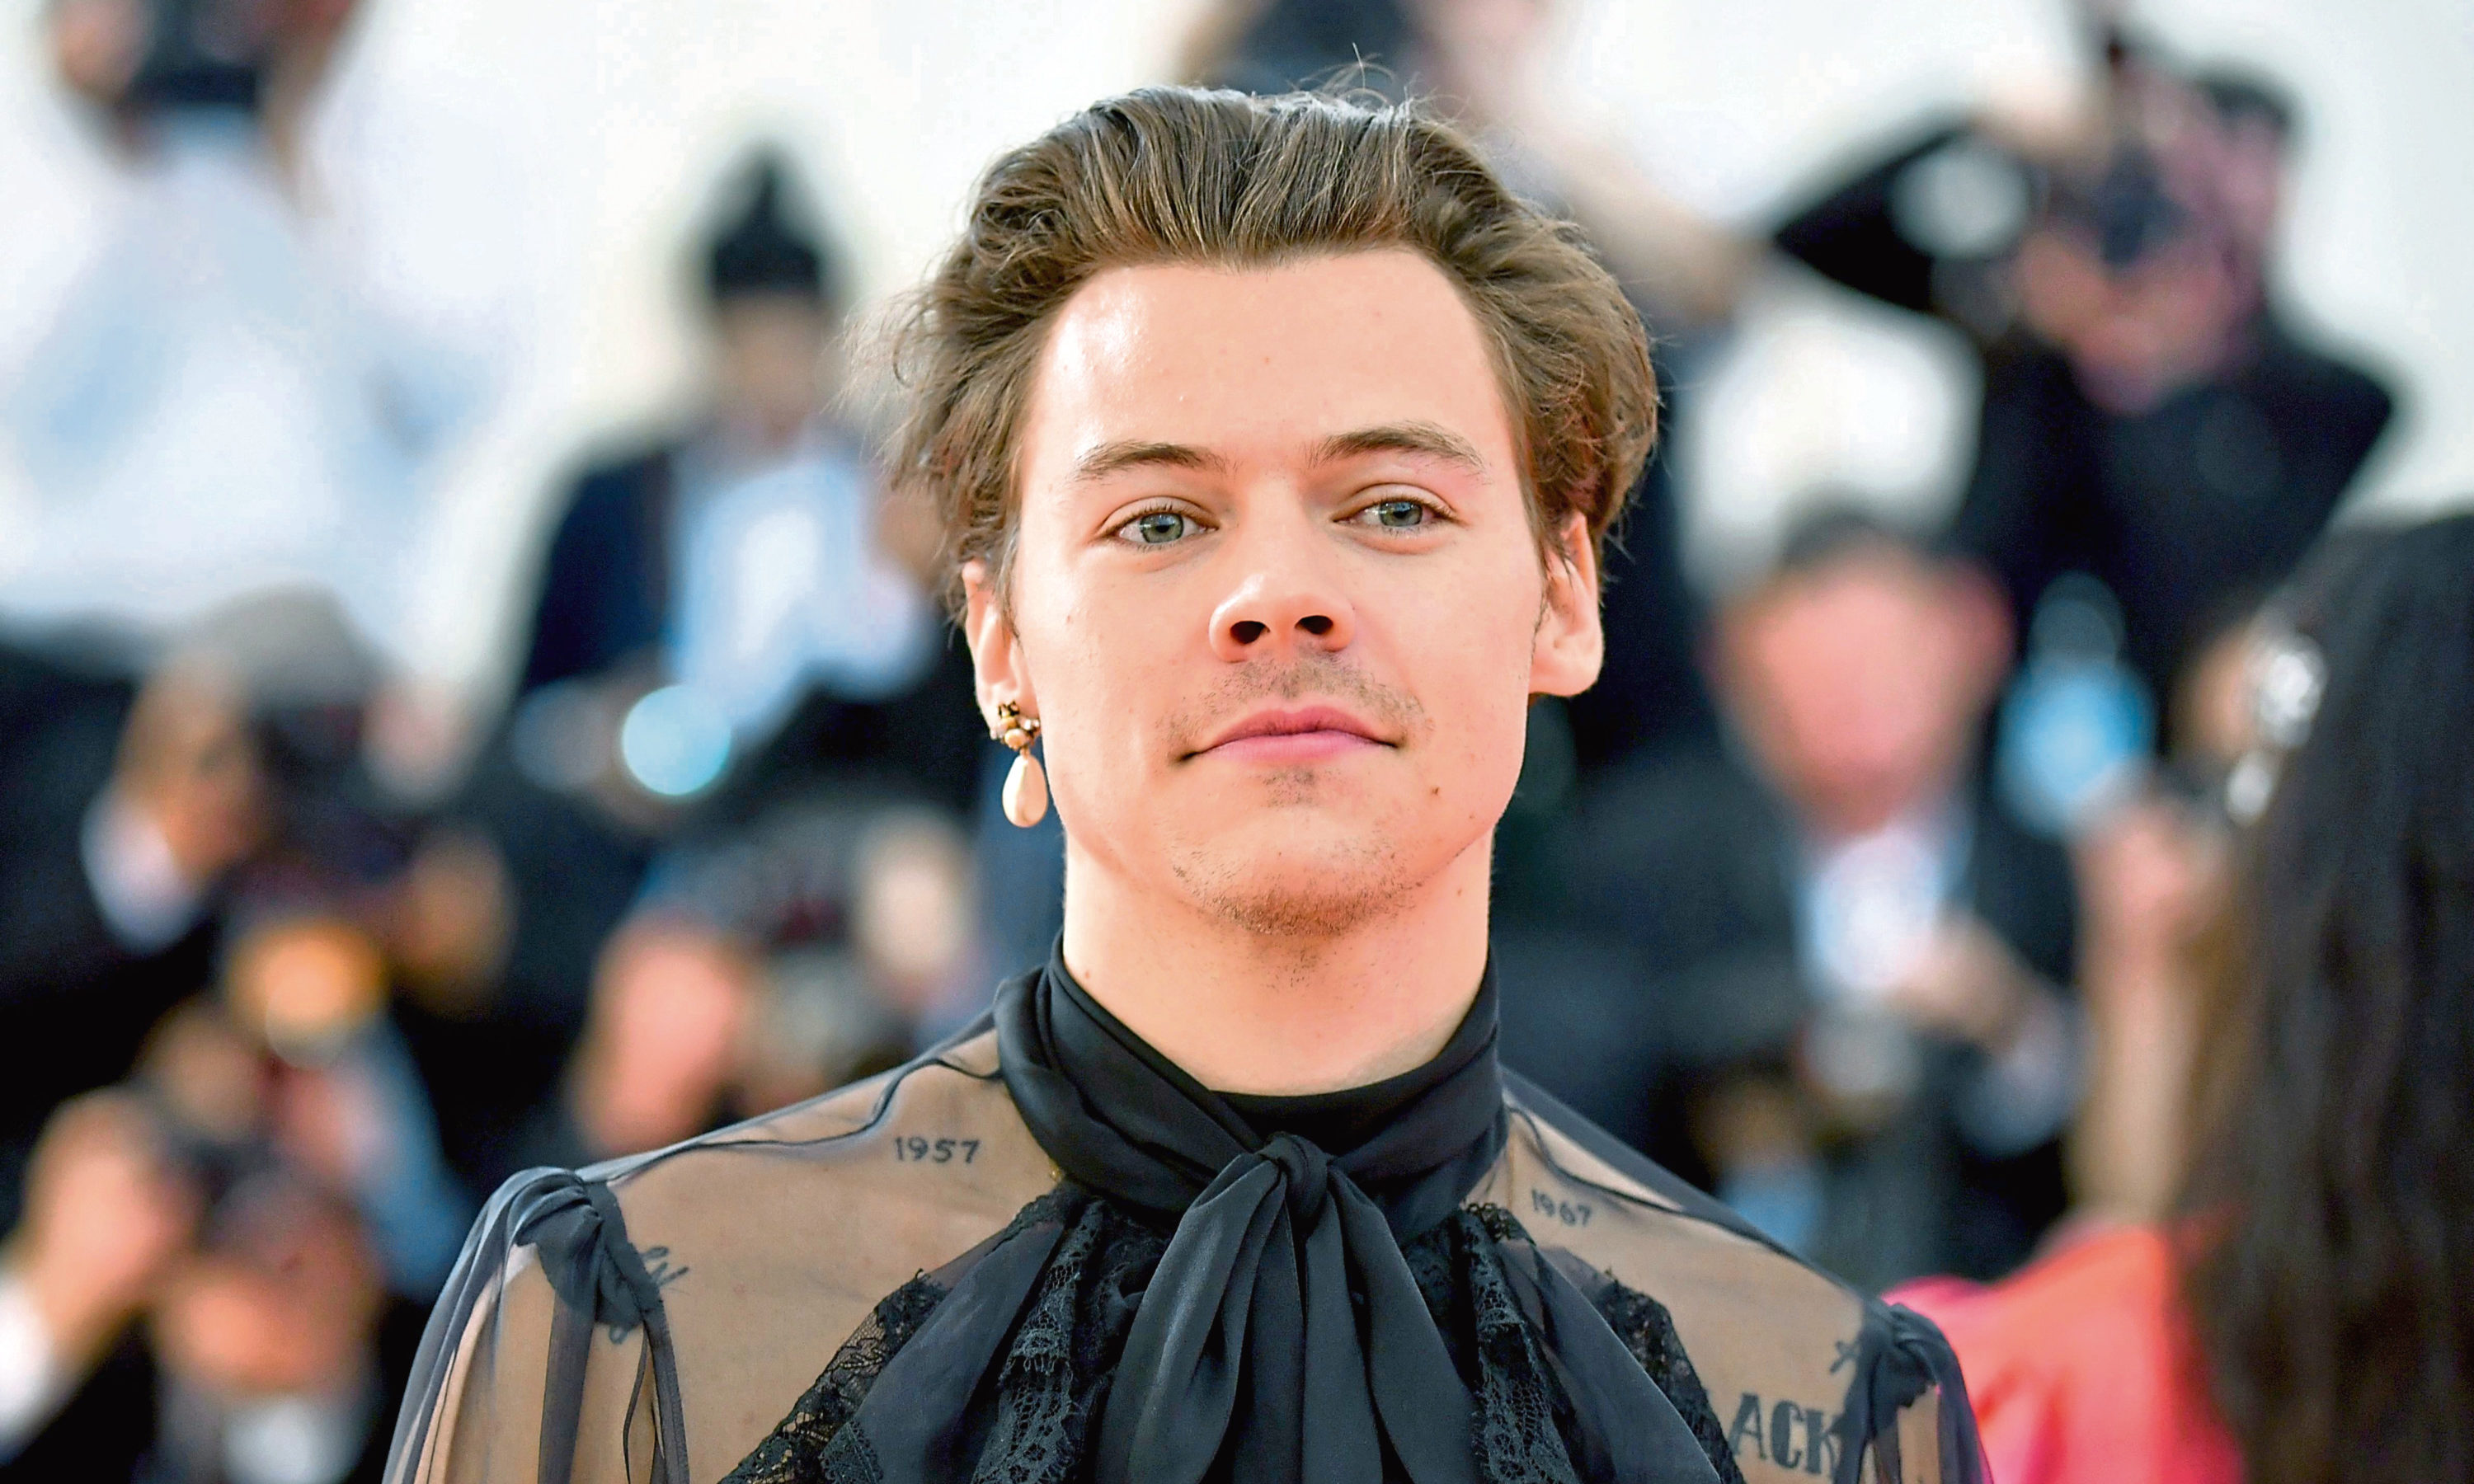 Harry Styles was one of the headline acts due to perform.